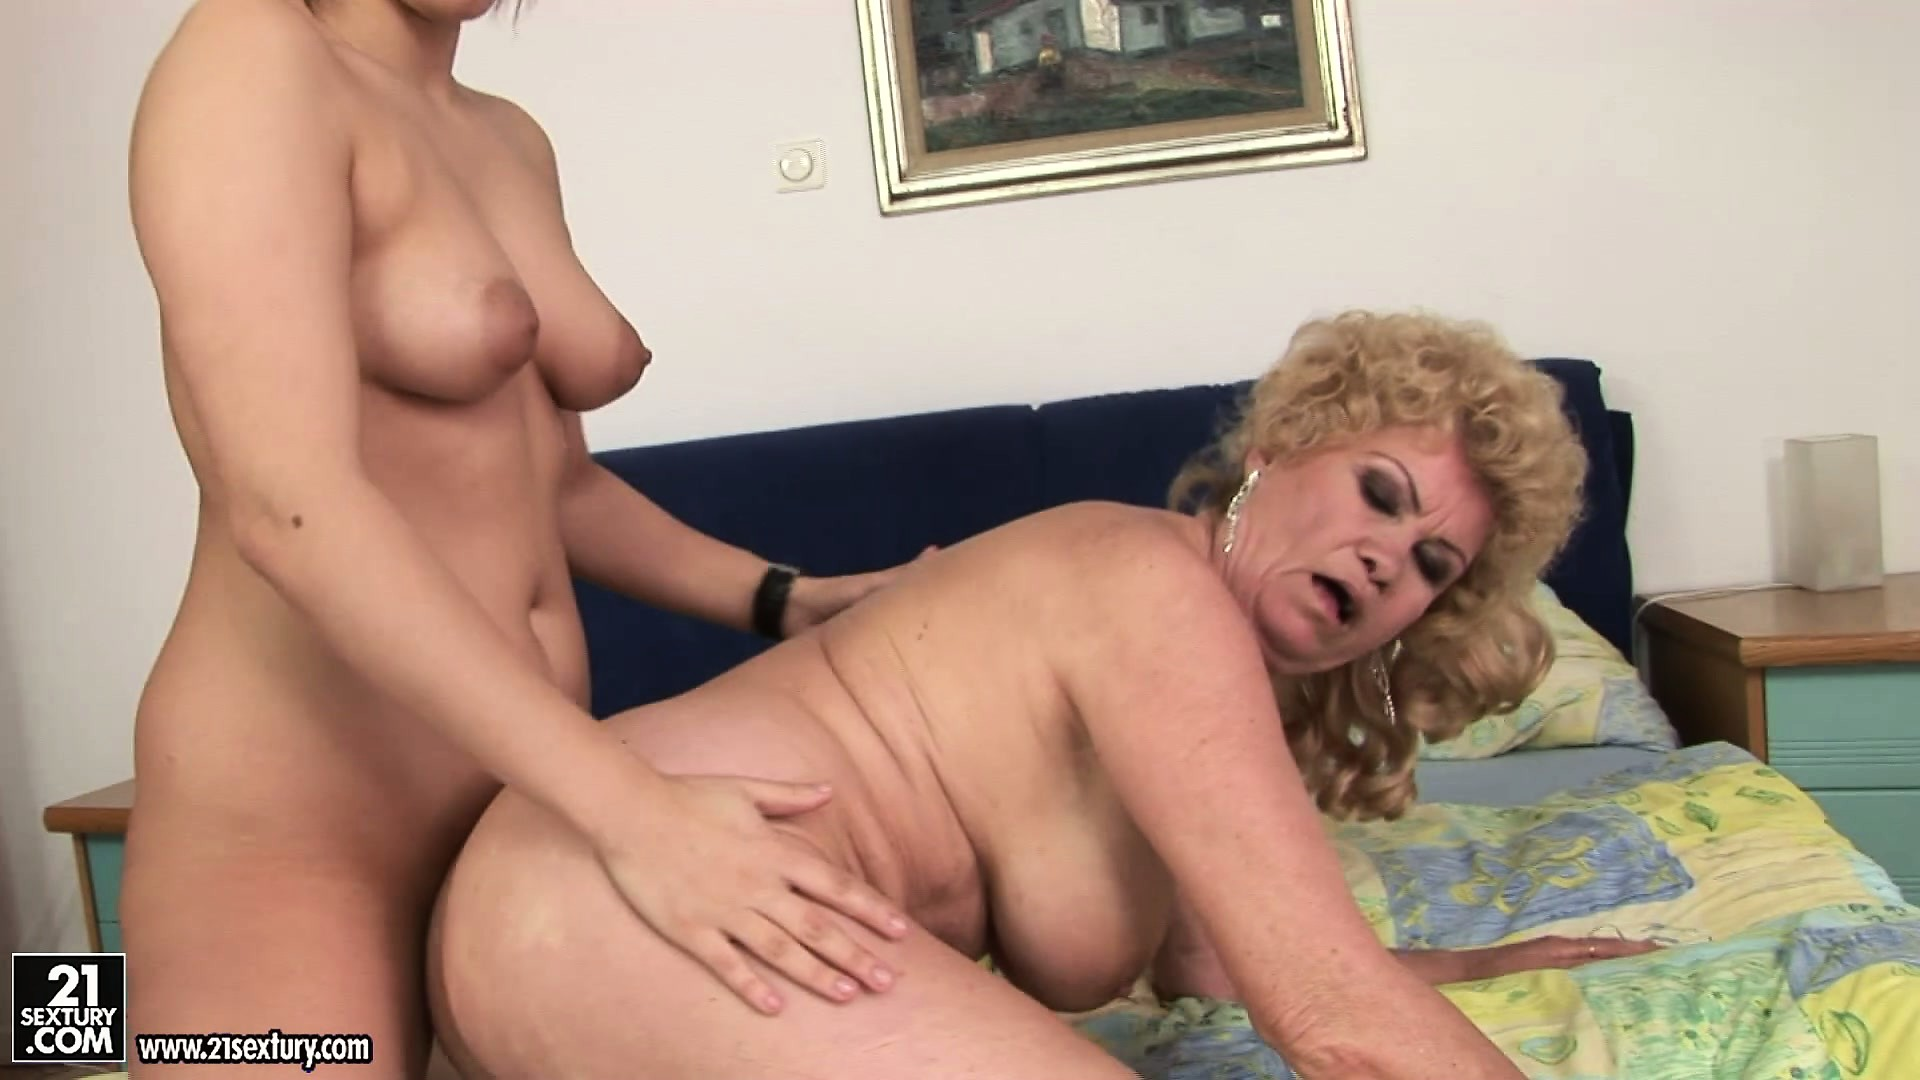 Porno Video of Effie Gets Her Ass Licked, Eats Pussy And Then Rides On The Strapon Dildo